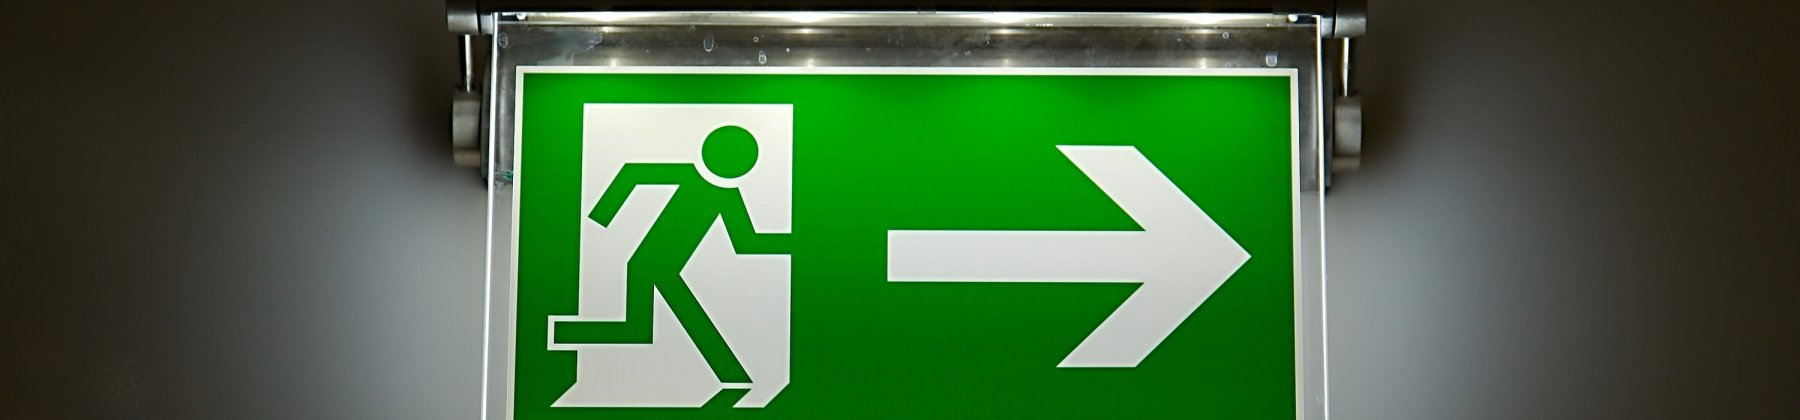 Emergency Lighting - are you compliant?